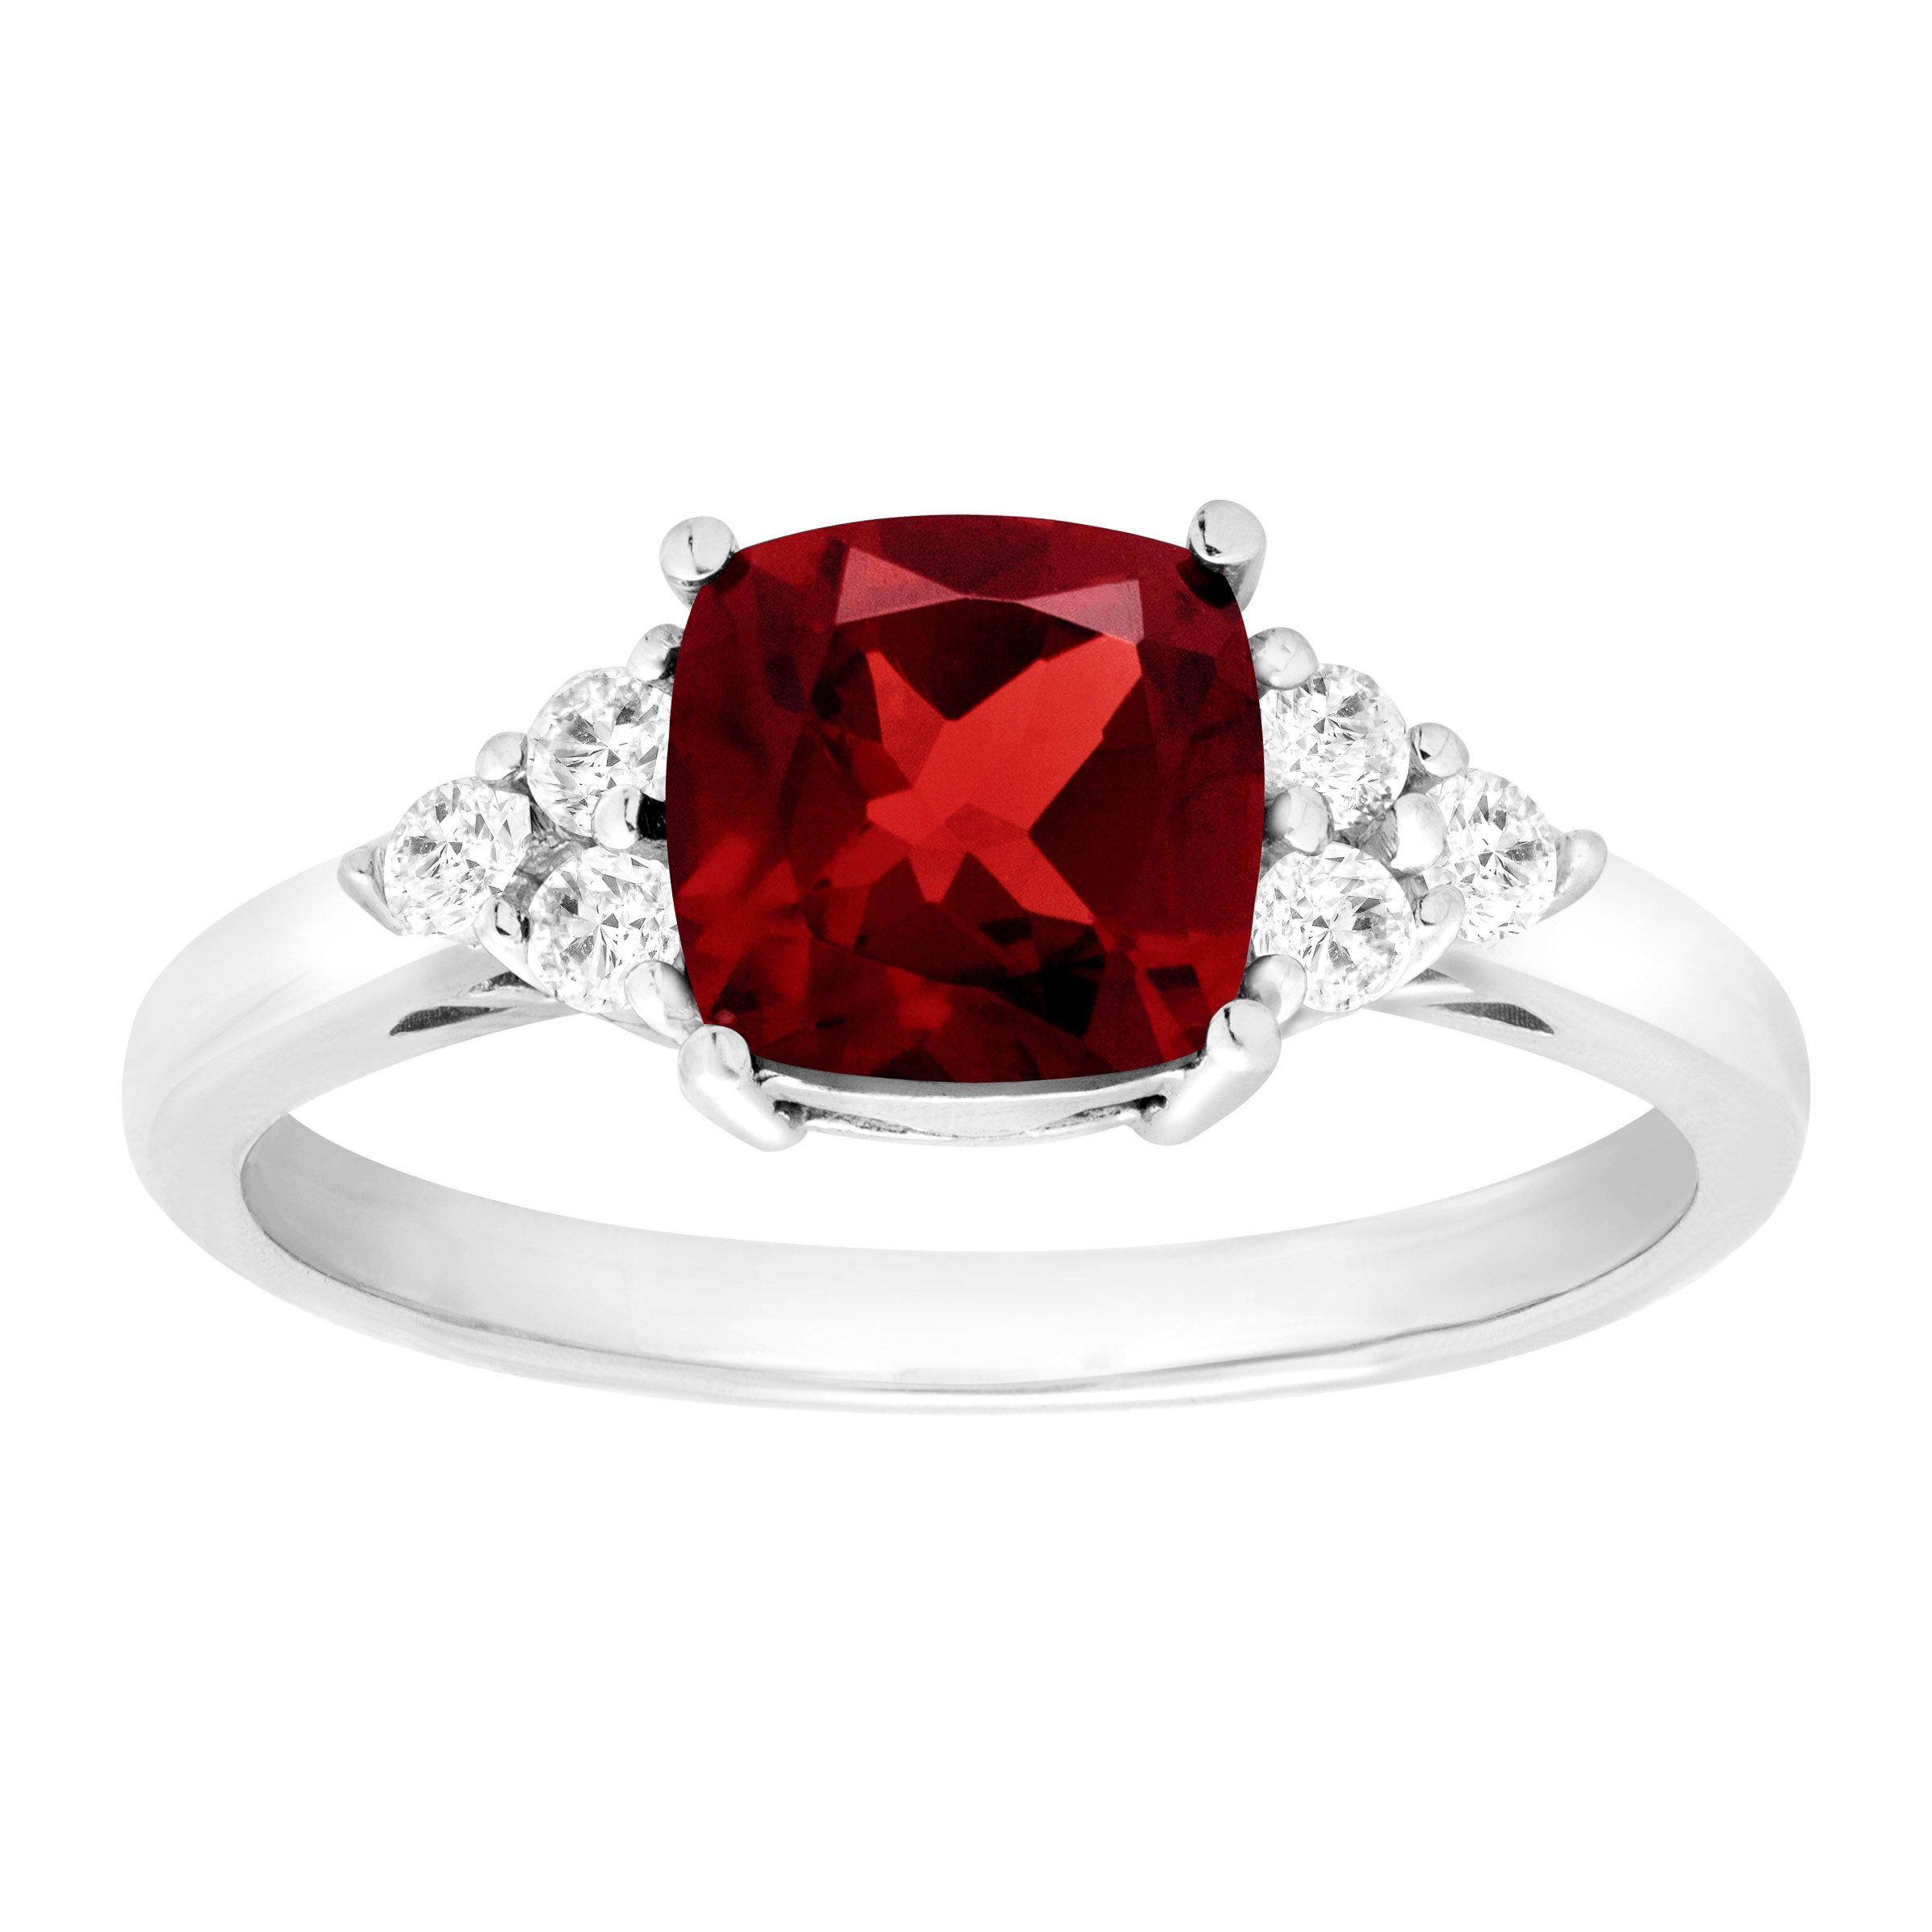 5 Ct Cushion Cut January Birthstone Garnet Sterling Silver Solitaire Ring Jewelry & Watches Engagement & Wedding